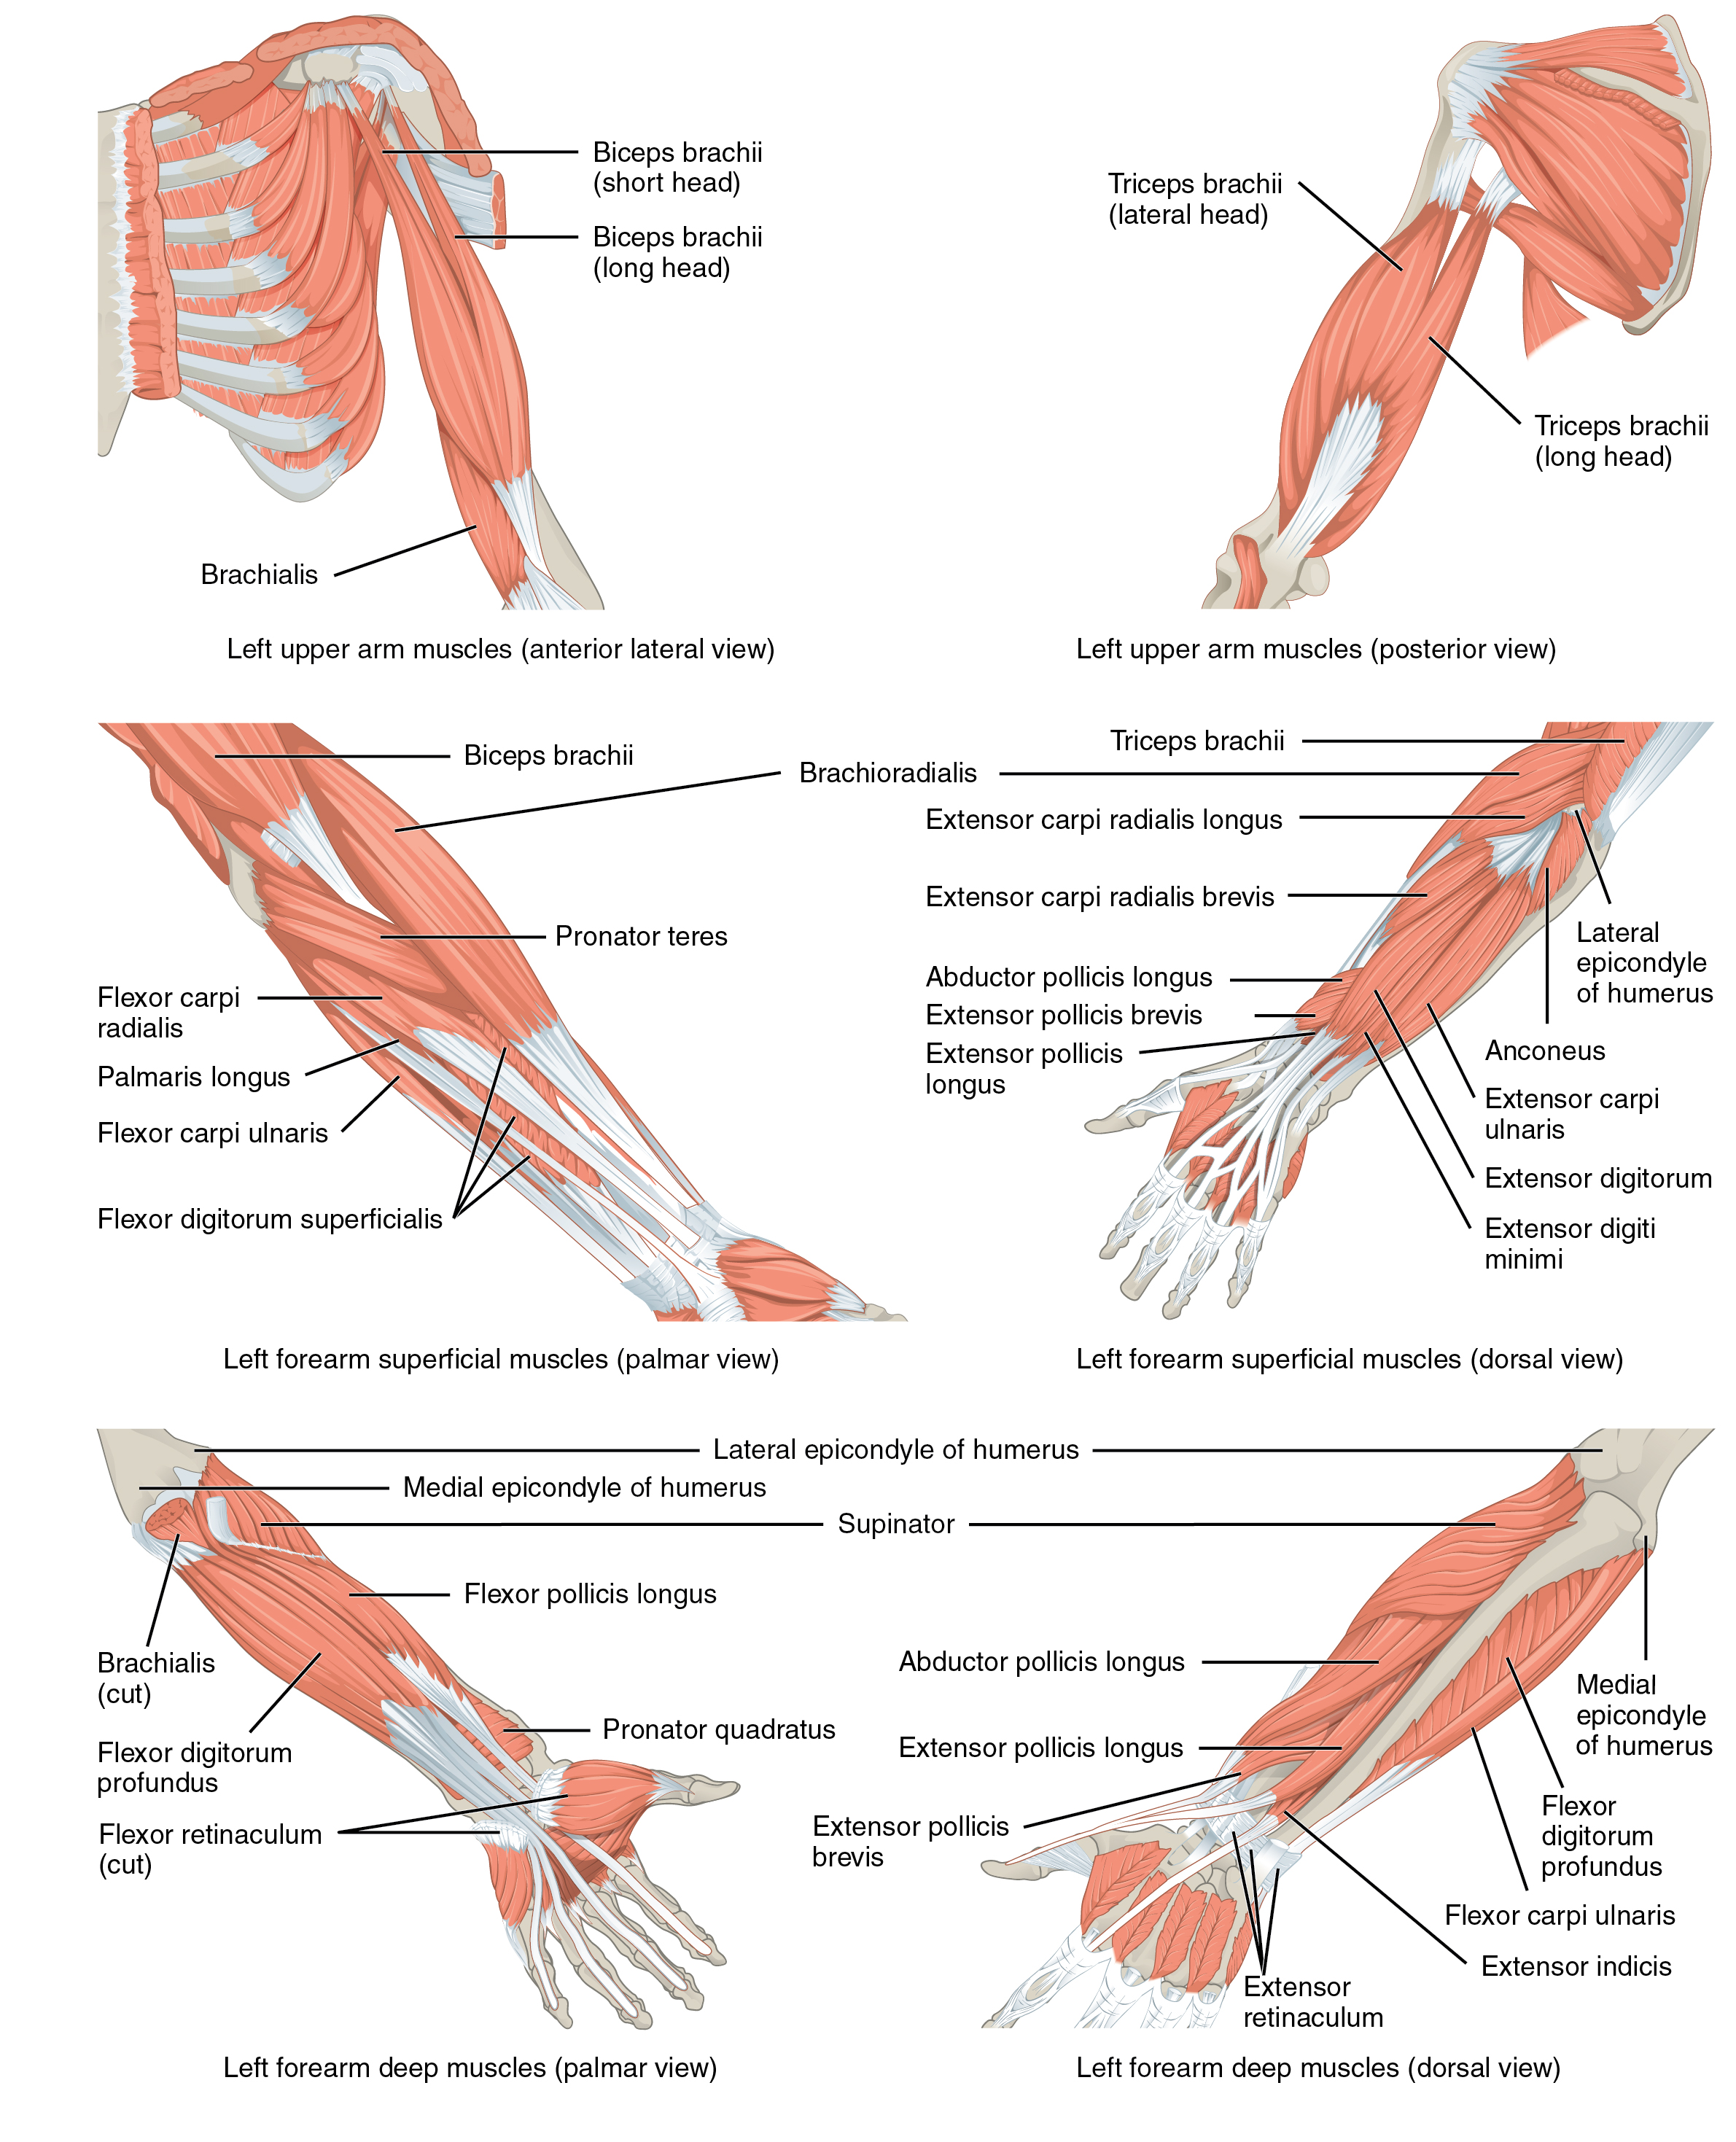 triceps brachii diagram how to wire a plug outlet muscles of the upper arm human anatomy and physiology